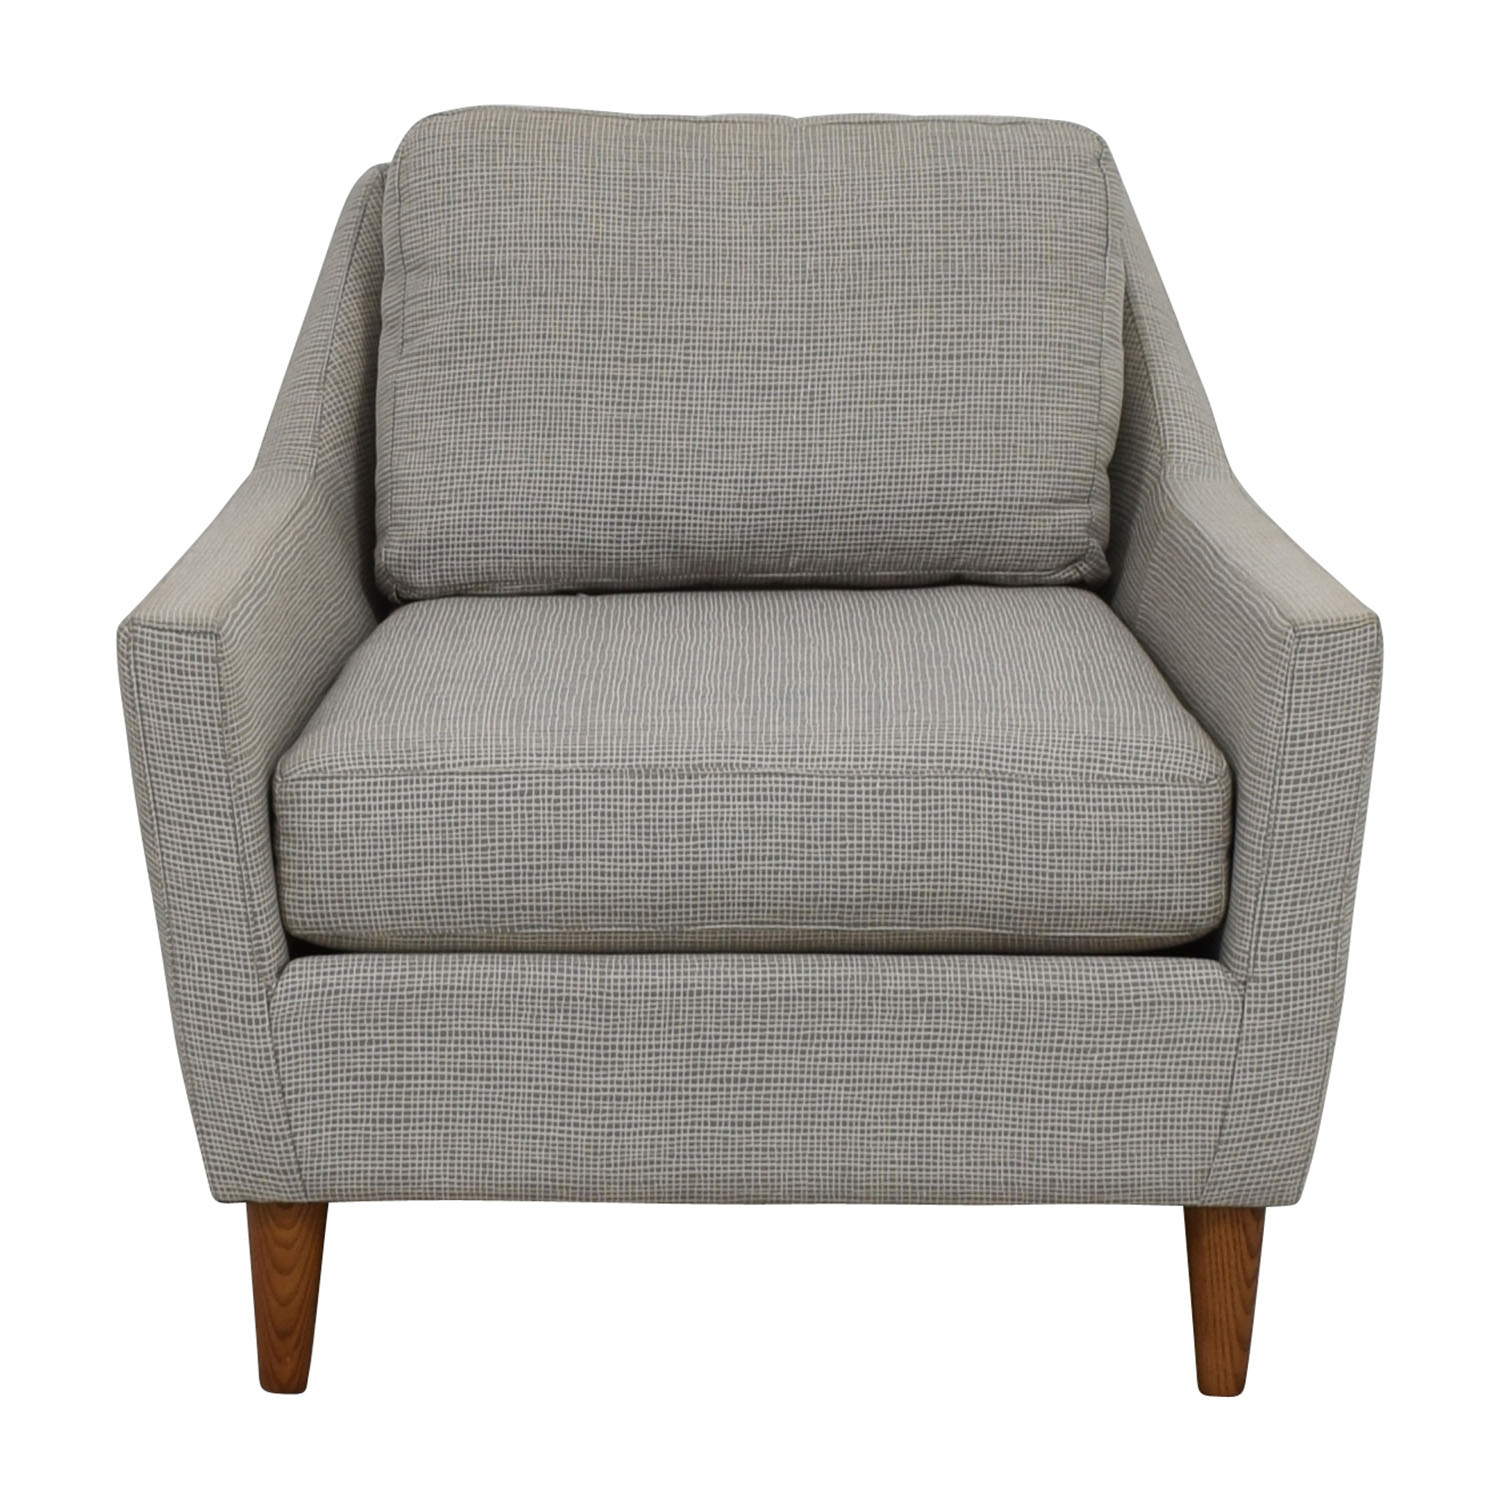 66% Off – West Elm West Elm Grey Everett Sofa Chair / Chairs For Elm Sofa Chairs (Photo 1 of 25)